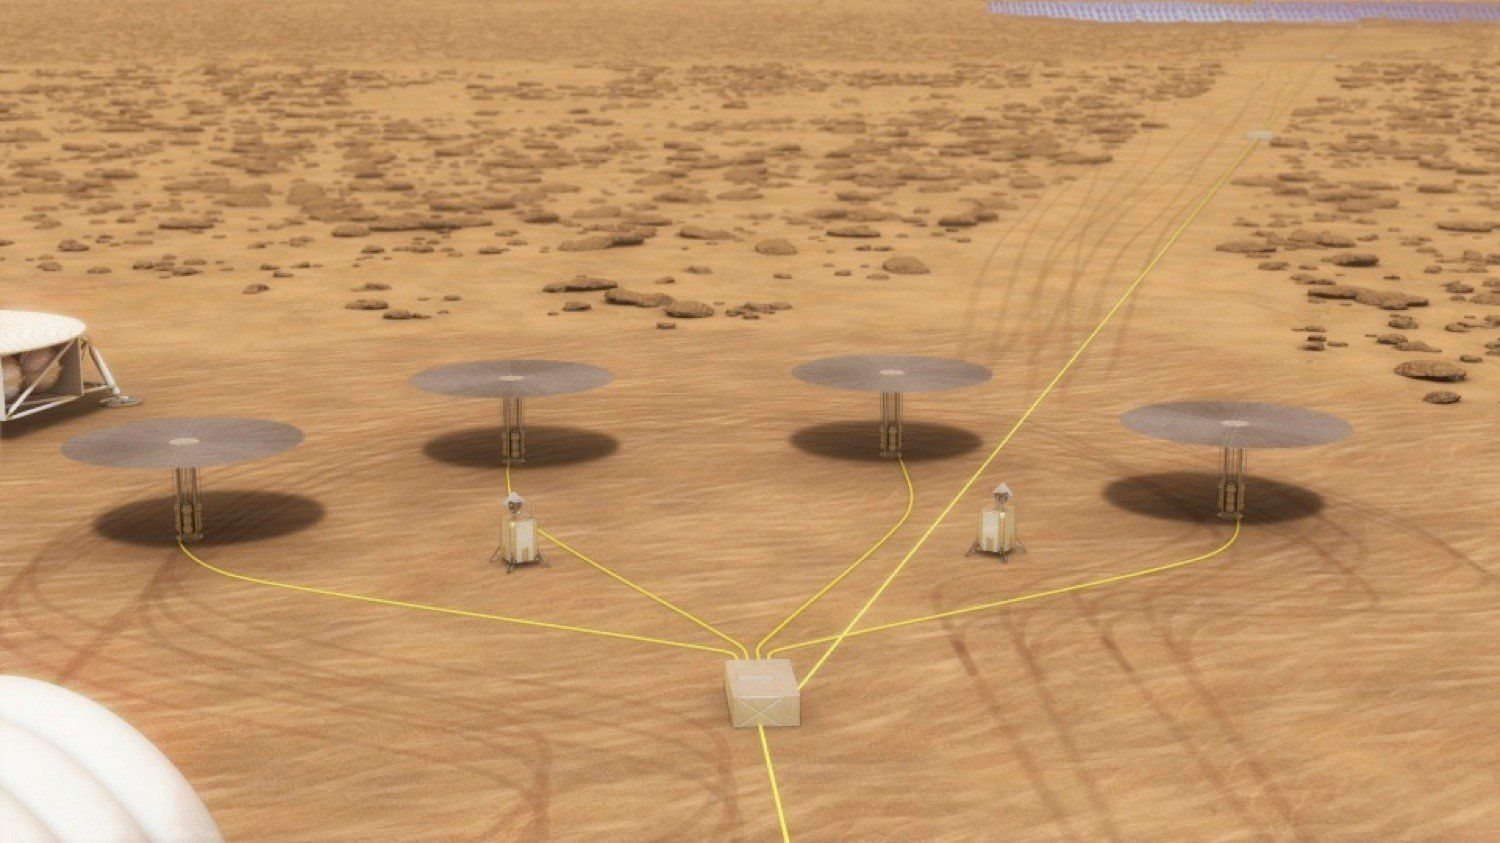 NASA tests nuclear reactor that could power Mars mission